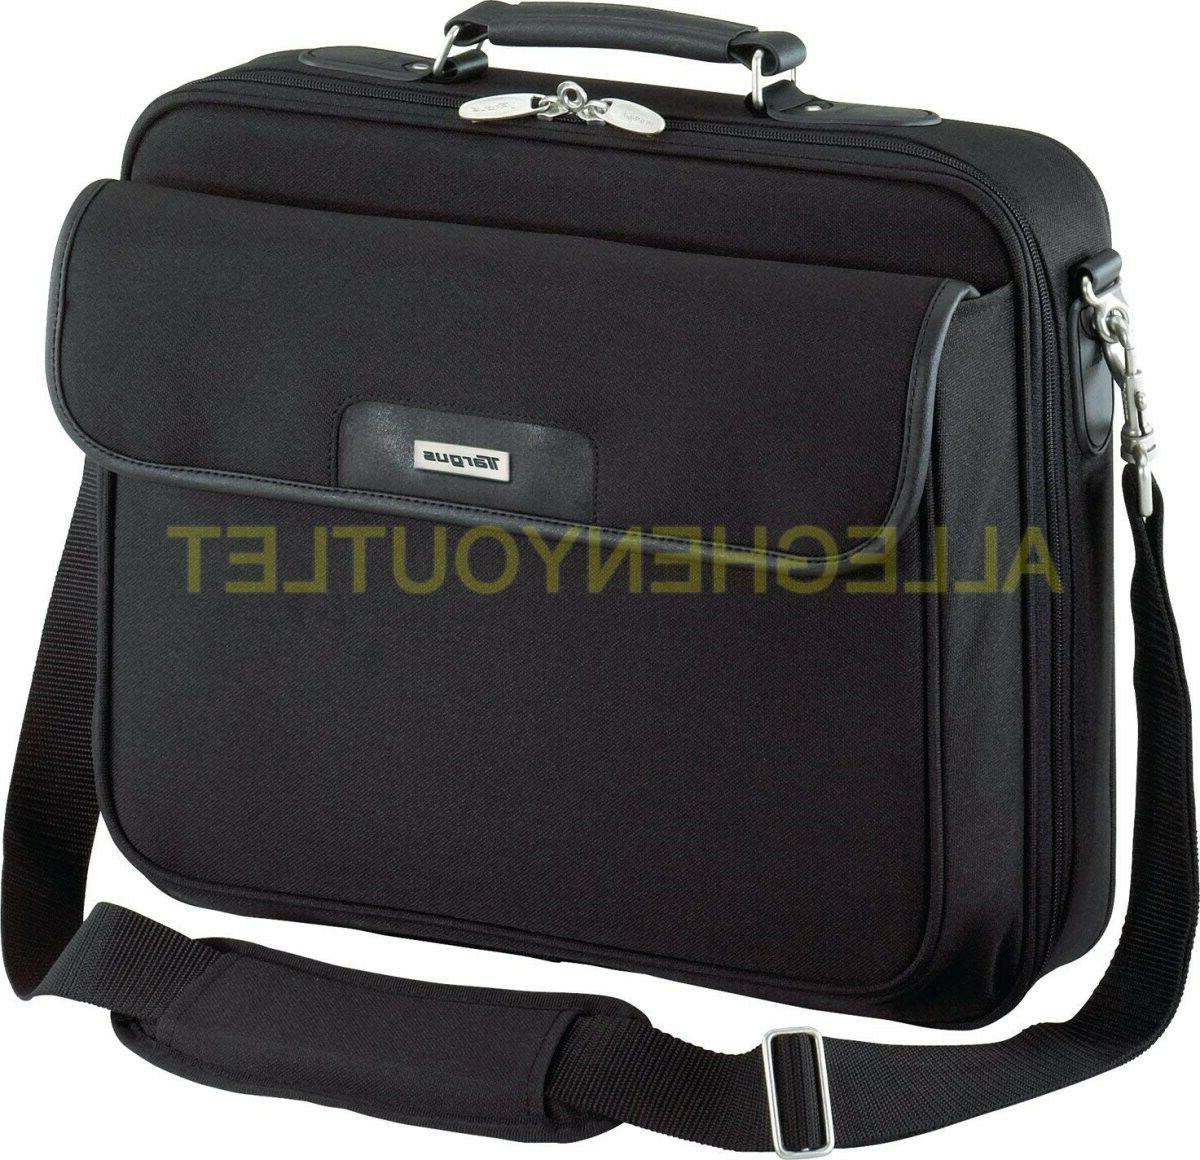 black padded carry bag with strap